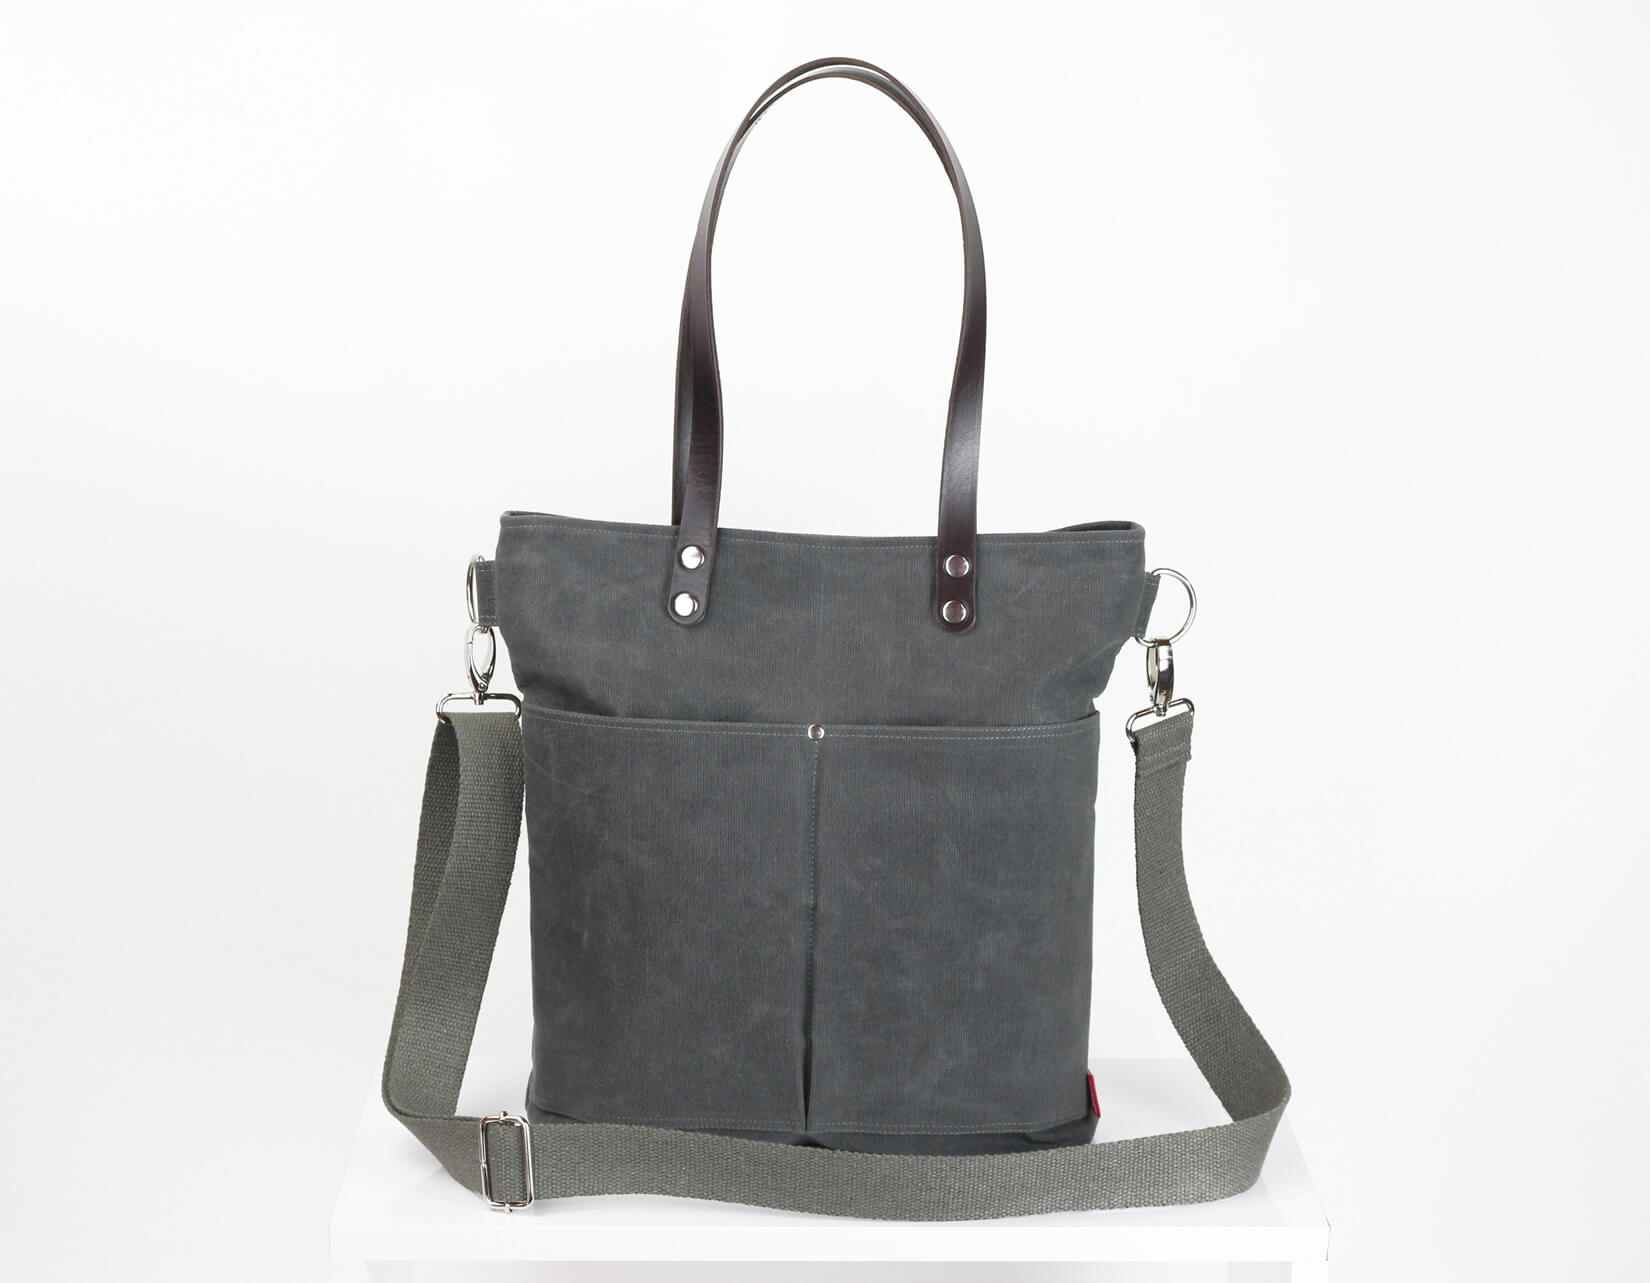 b7b7594fa799 Waxed tote bag with leather shoulder tote bag